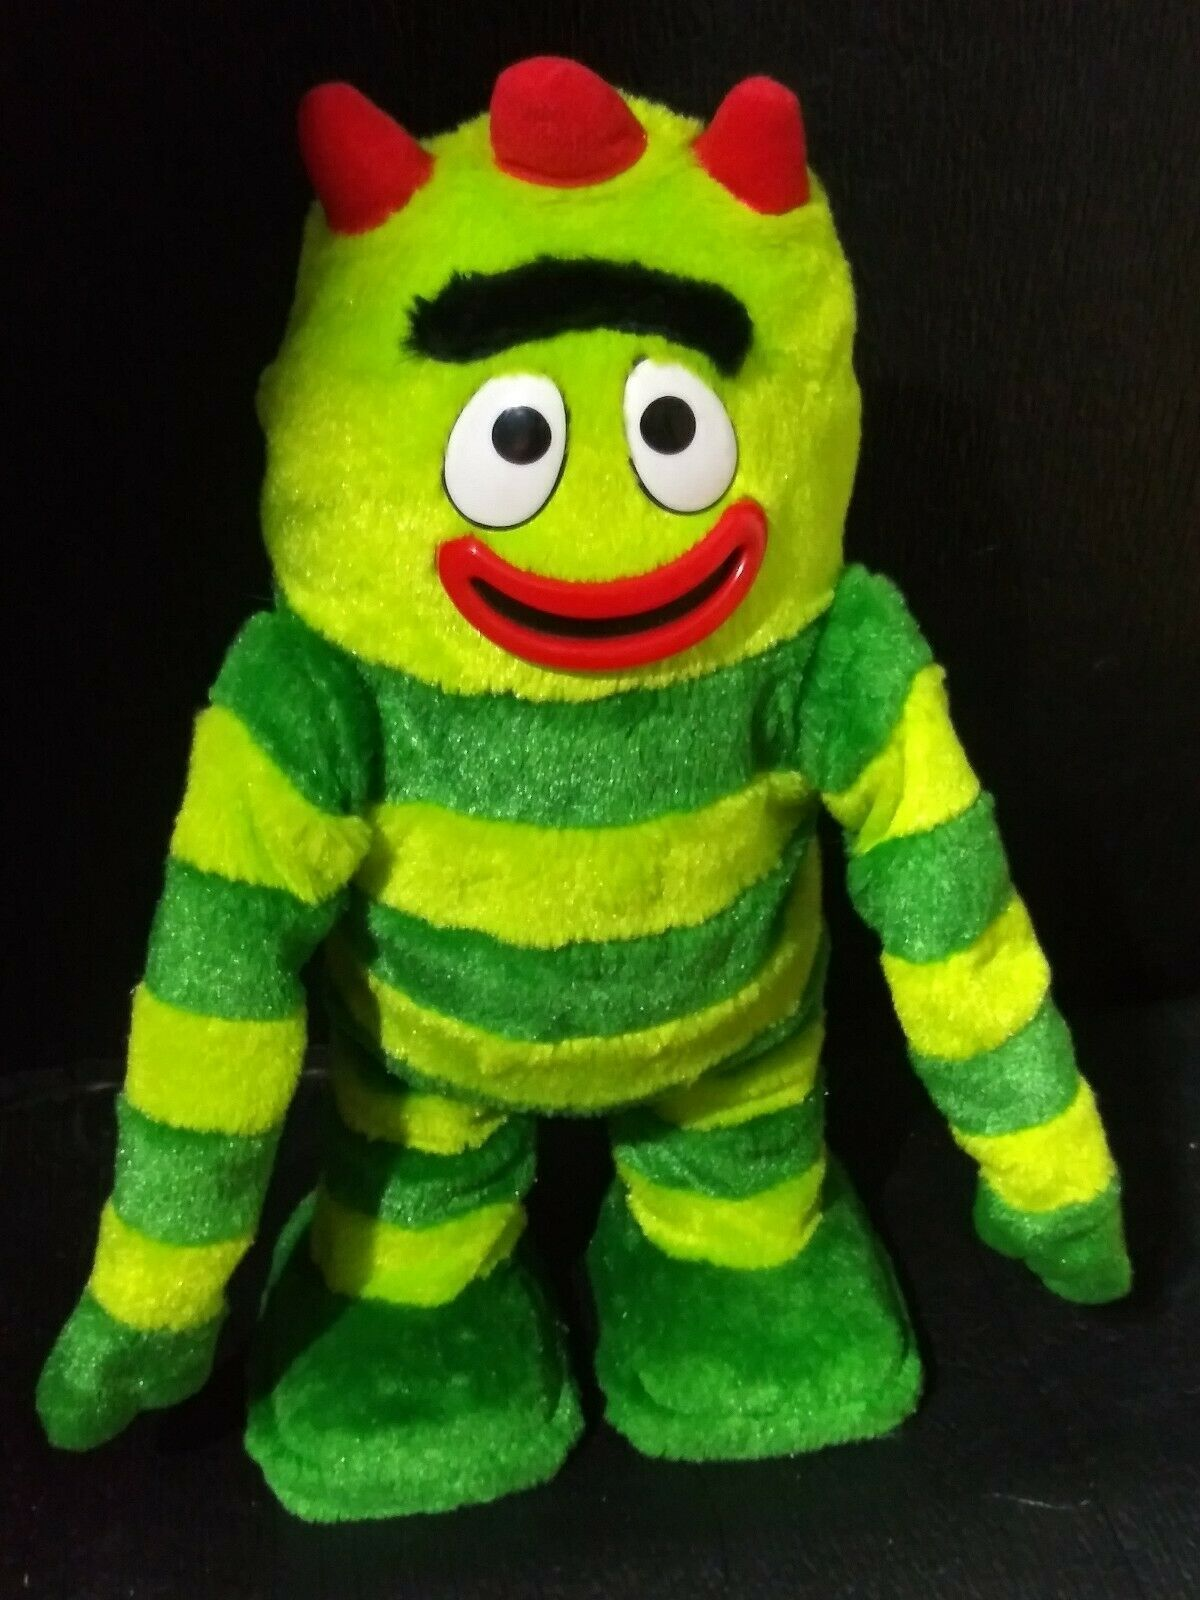 New YO GABBA GABBA Brobee Light-Up Plush Toy NIB Stuffed Animal